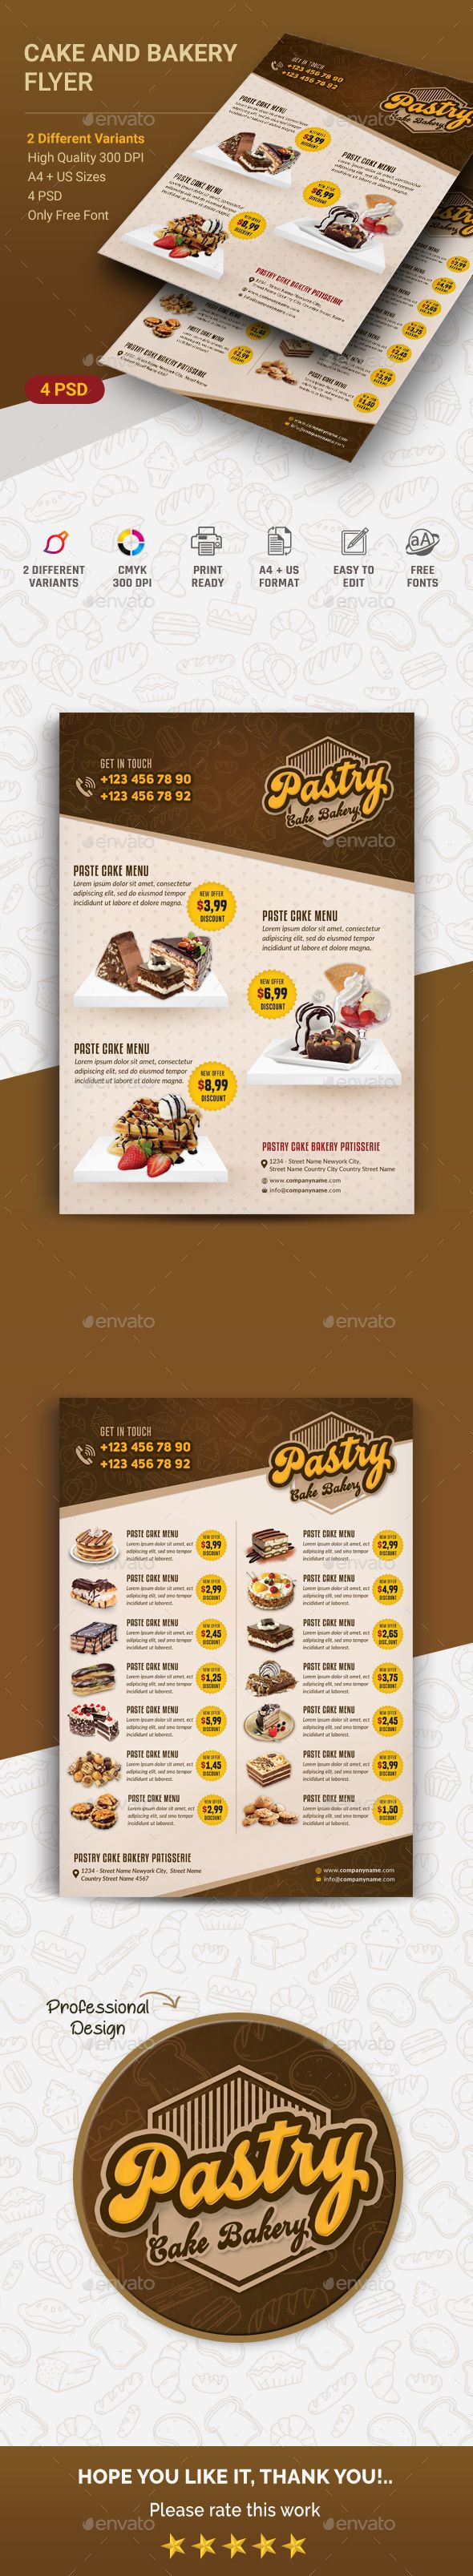 Cake And Bakery Flyer Template PSD